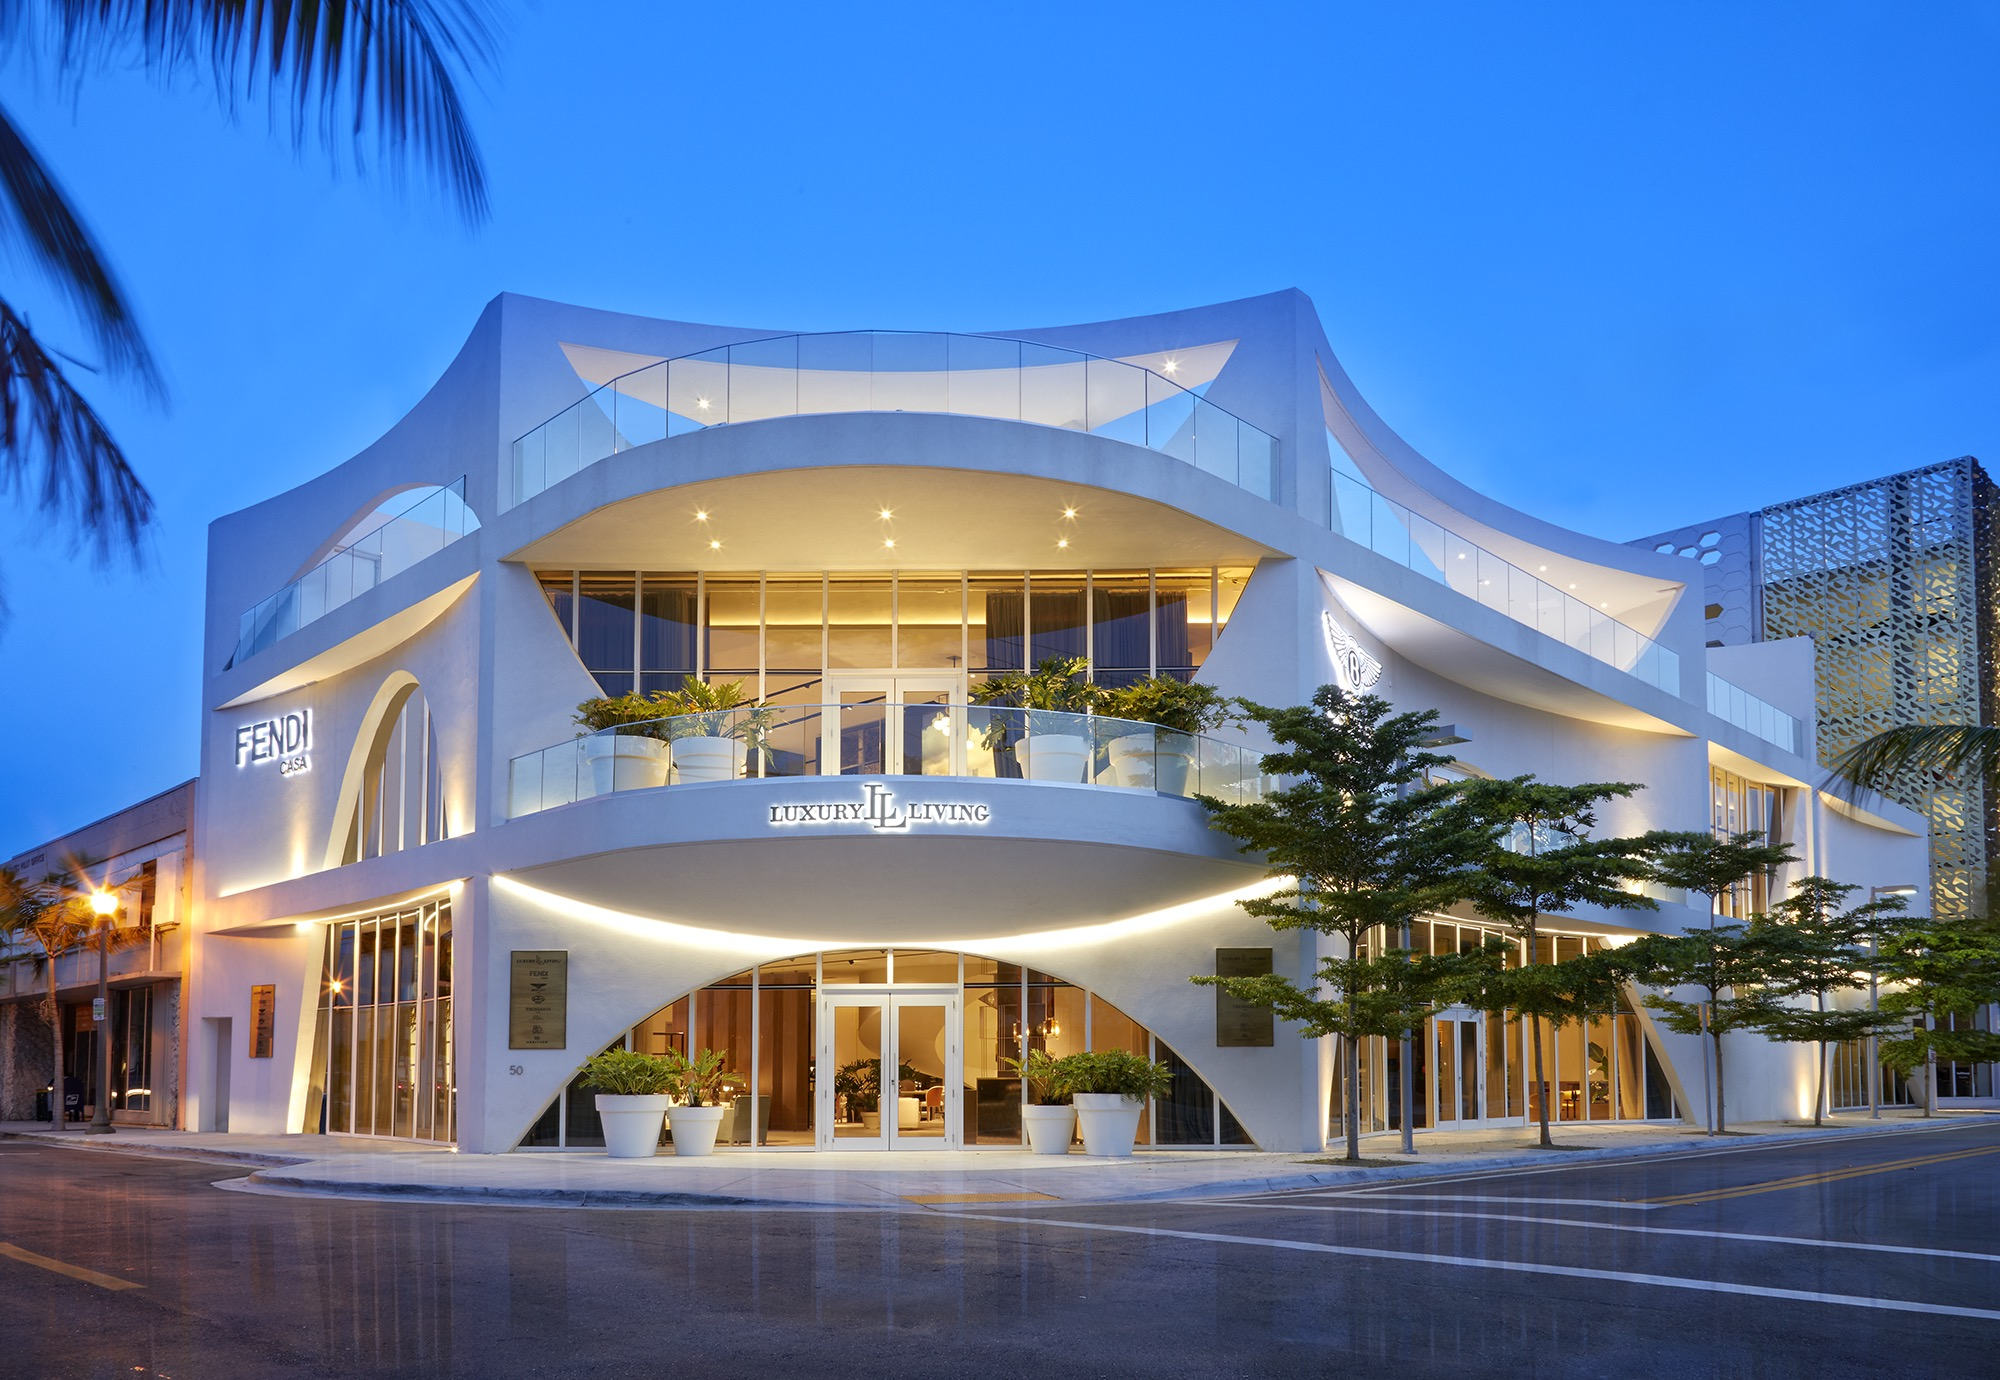 Curvy White Palazzo Full Of Italian Furniture Opens In The Miami Design District The Big Bubble Miami